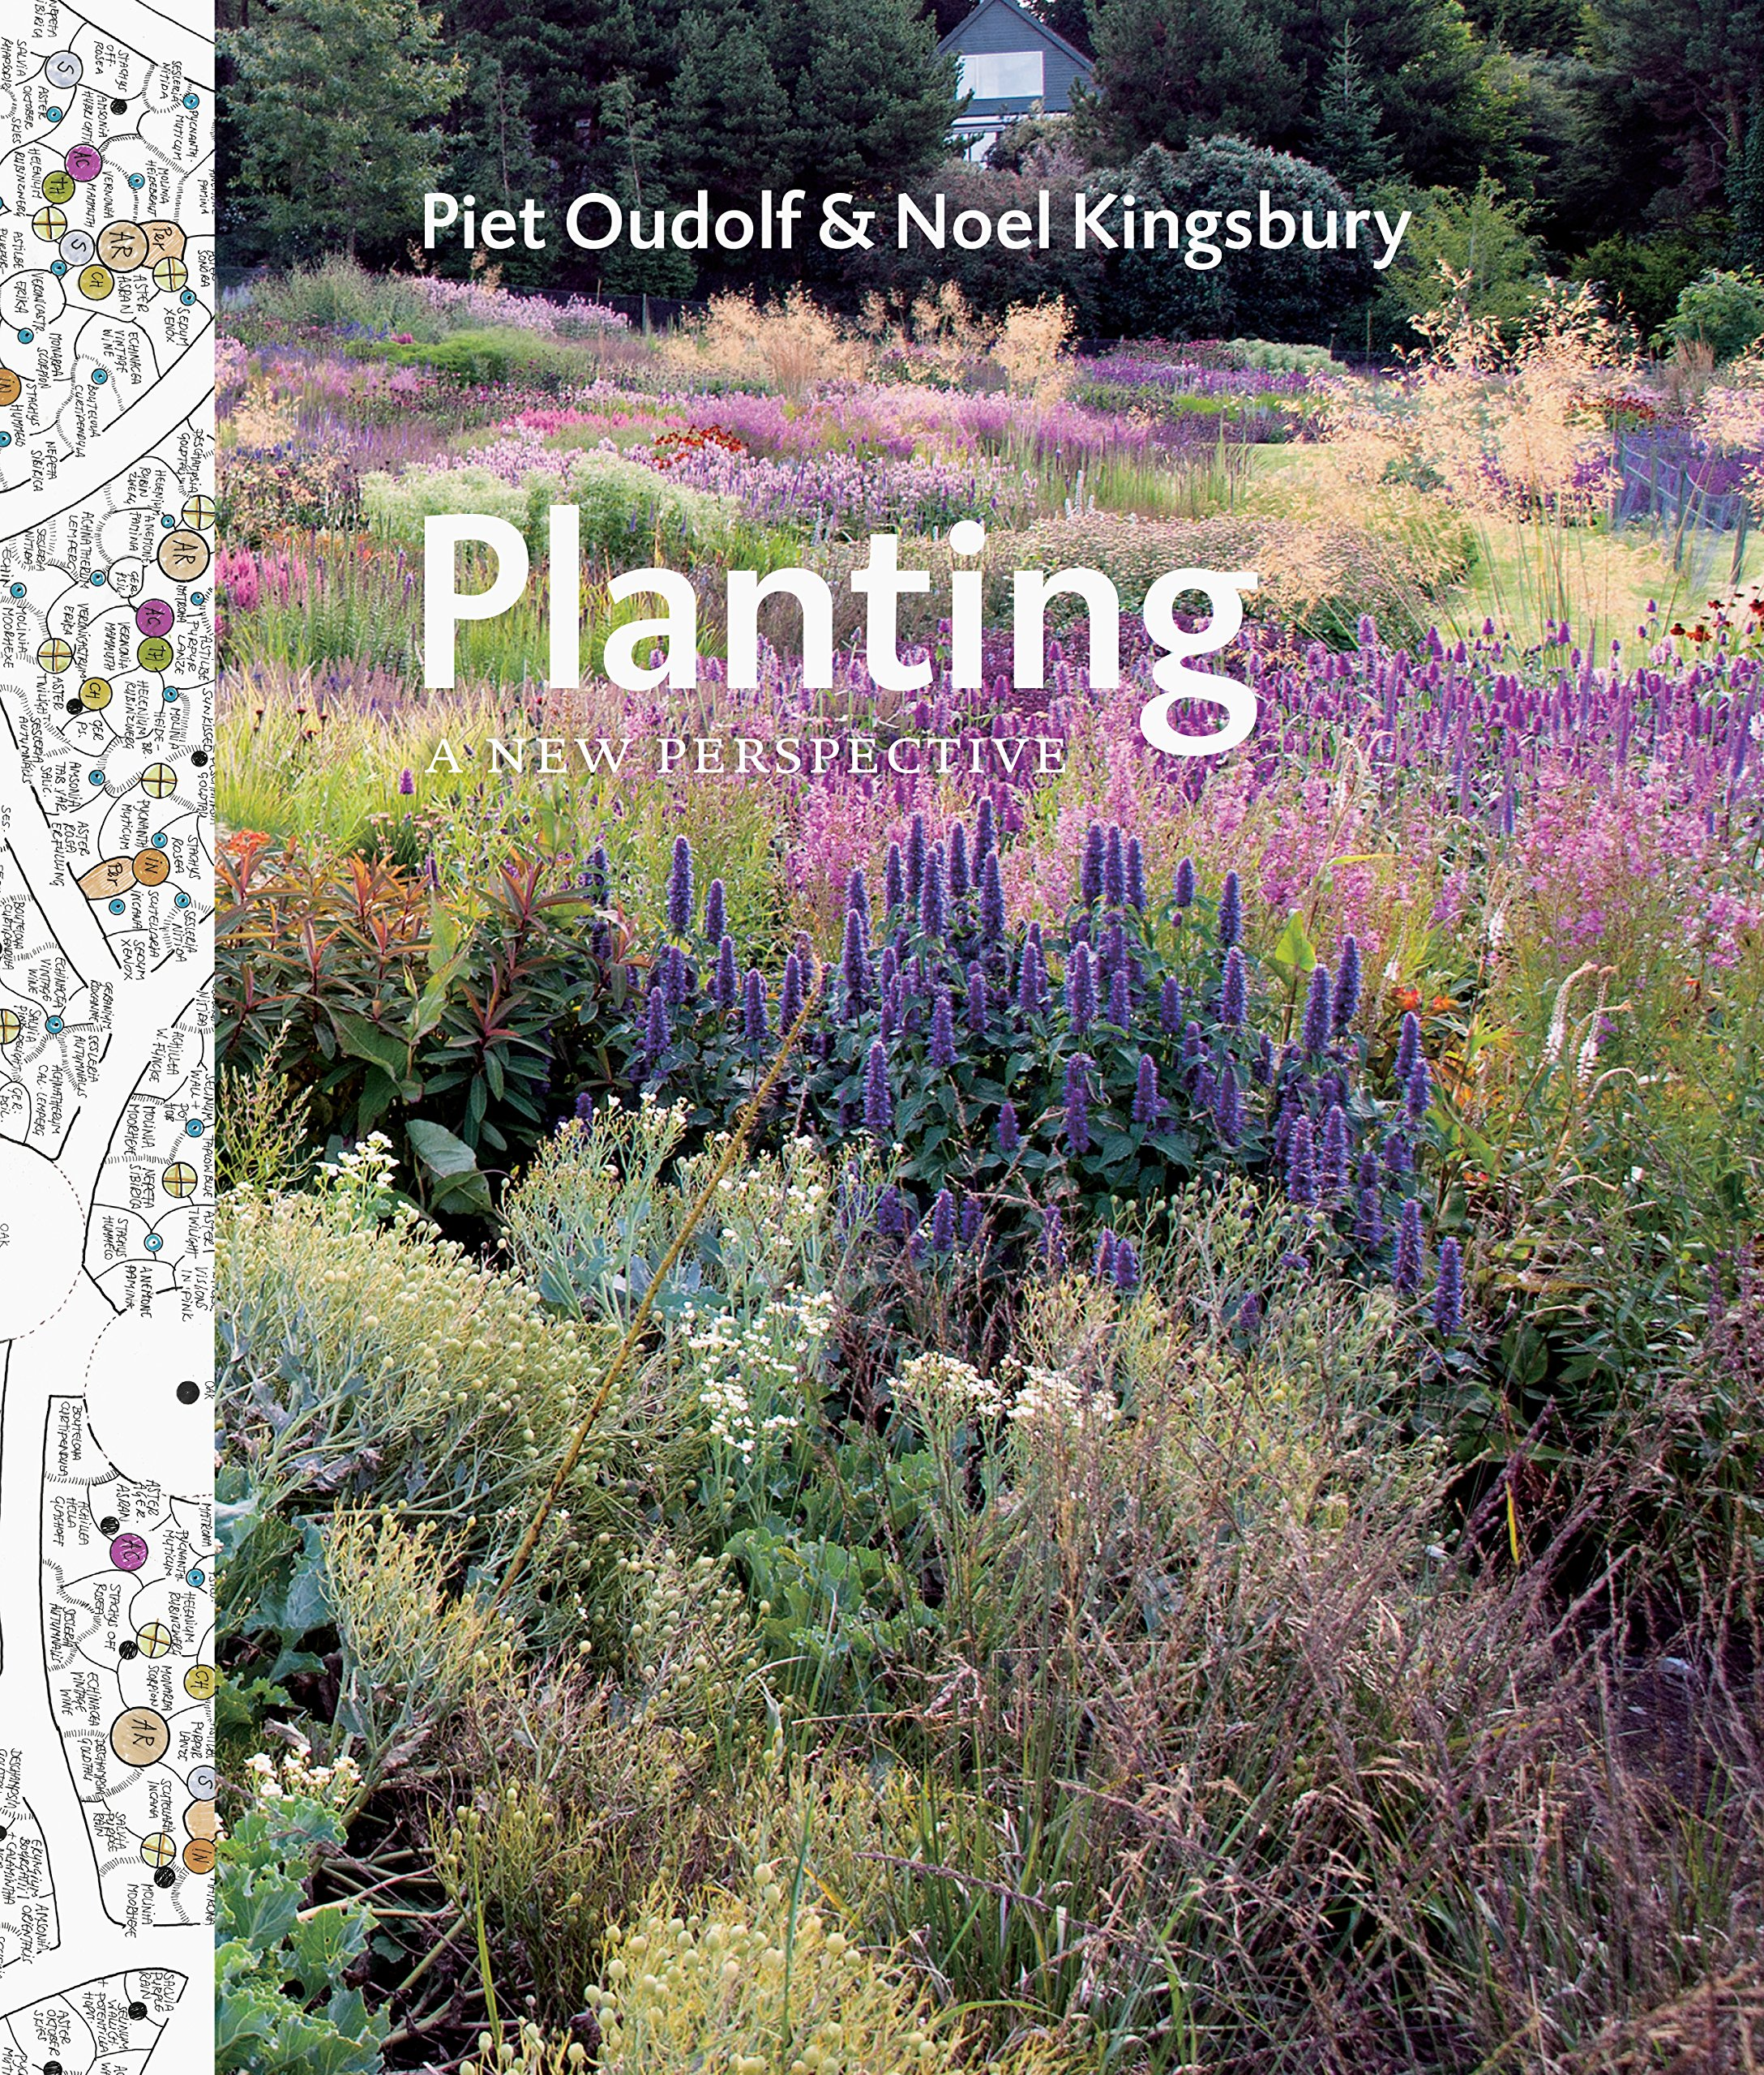 Planting: A New Perspective by Timber Press